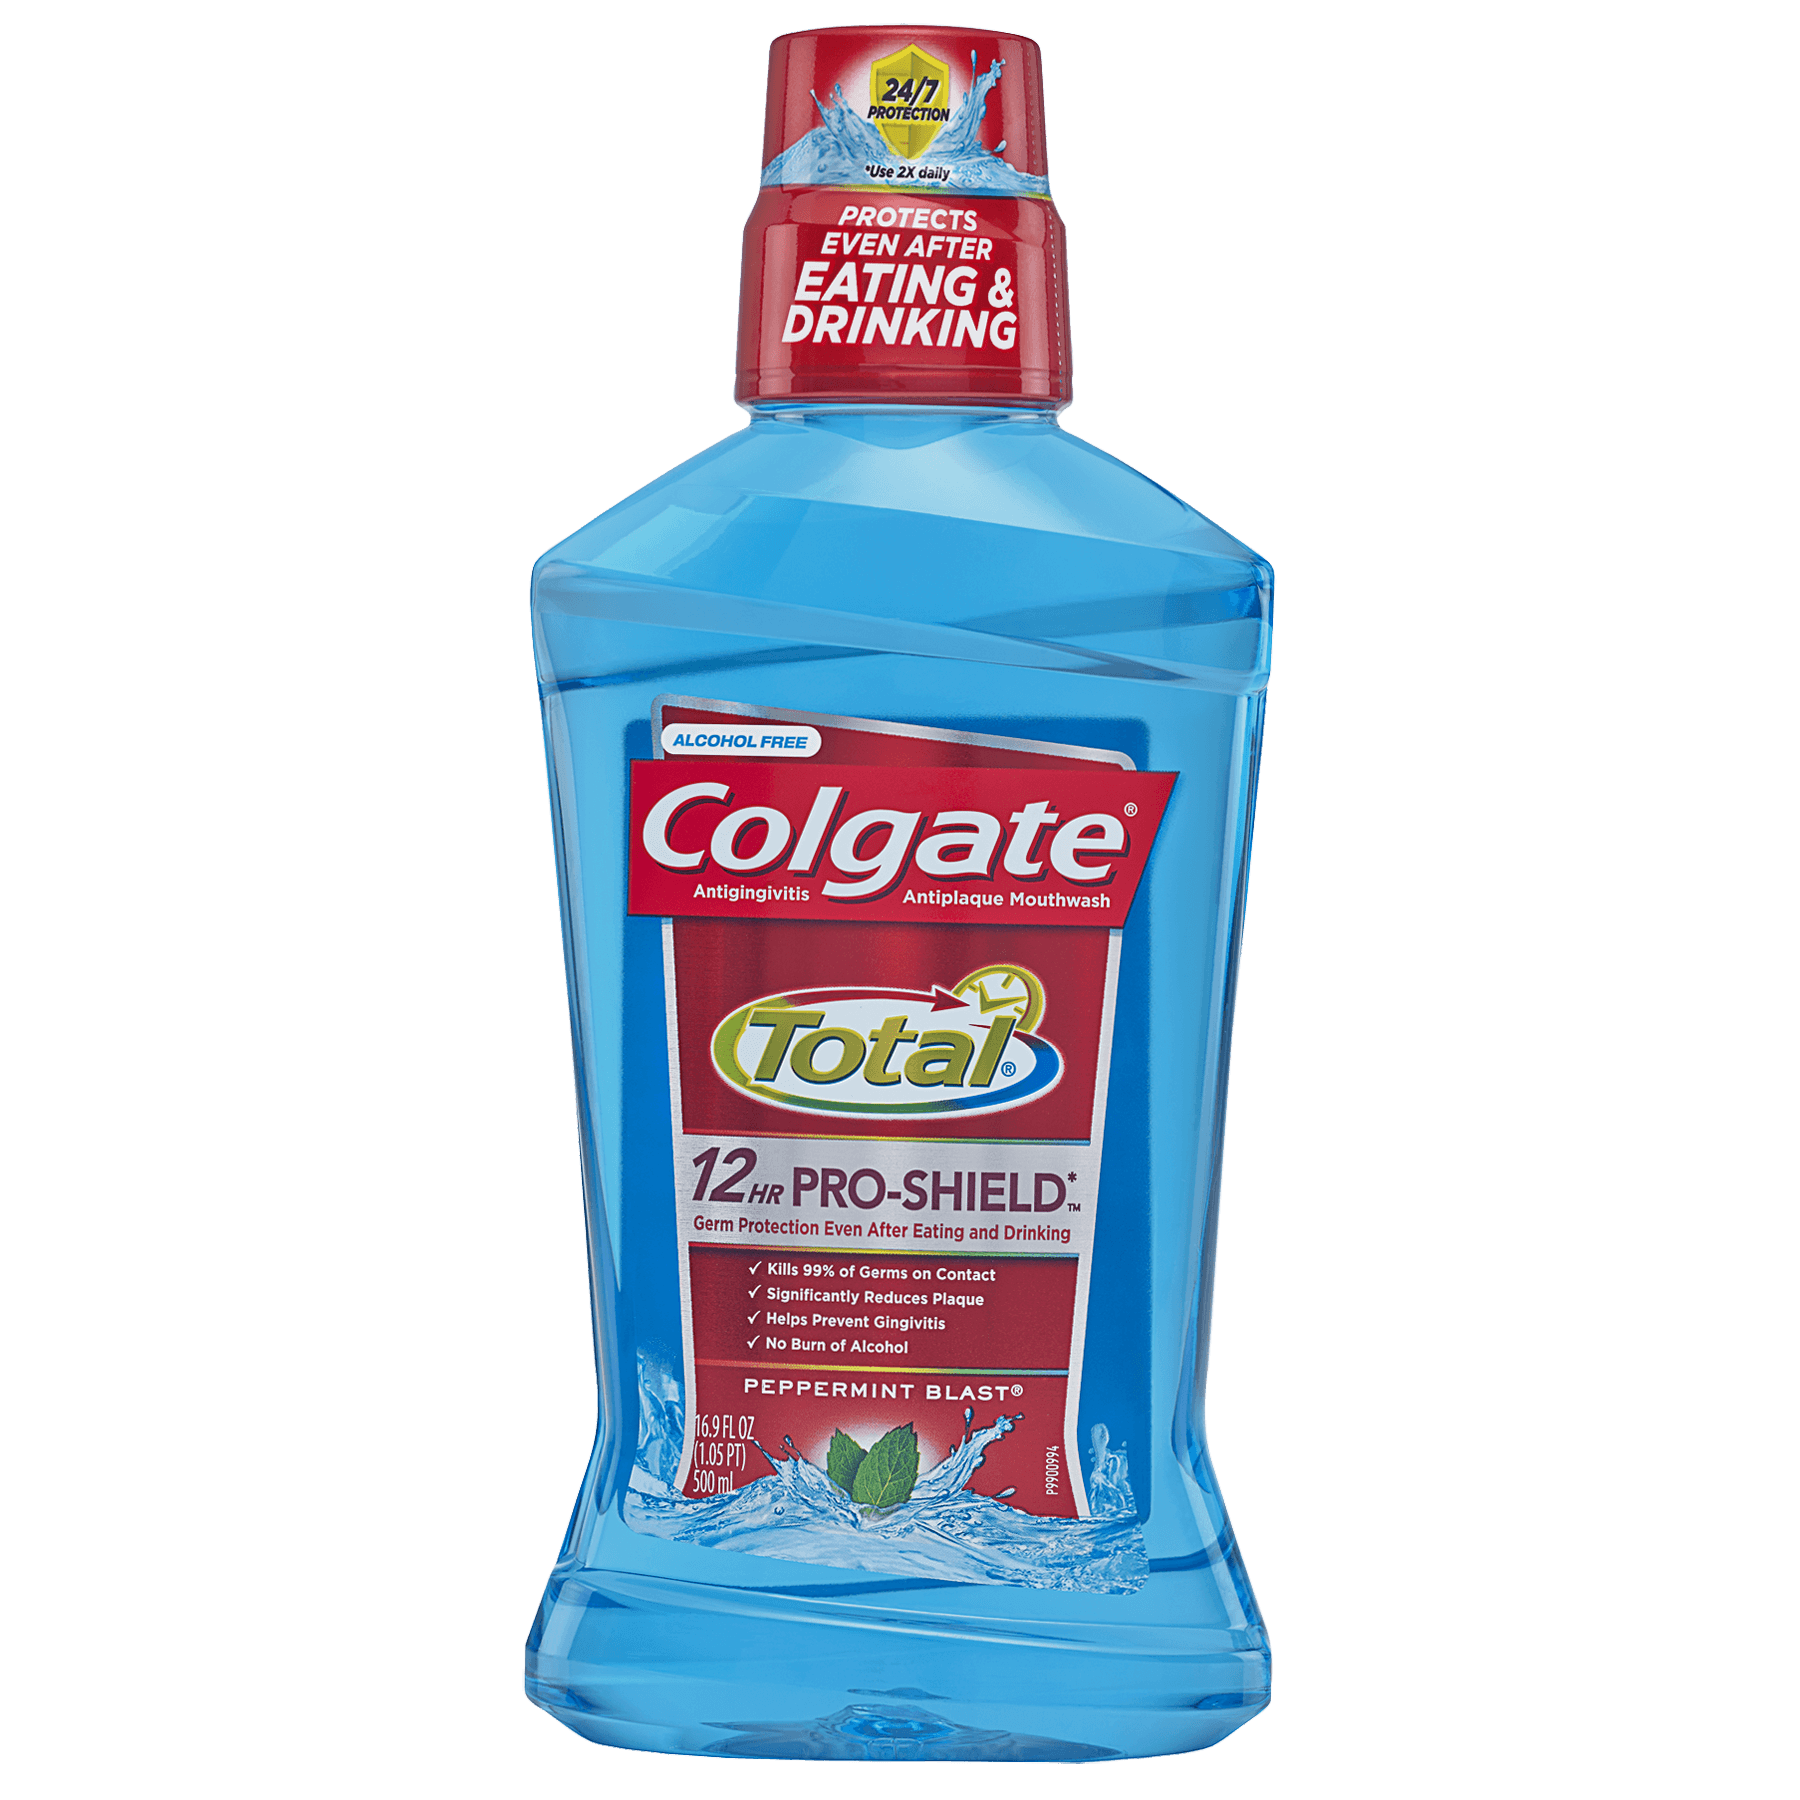 (2 pack) Colgate Total Pro-Shield Mouthwash, Peppermint - 500mL, 16.9 fl oz